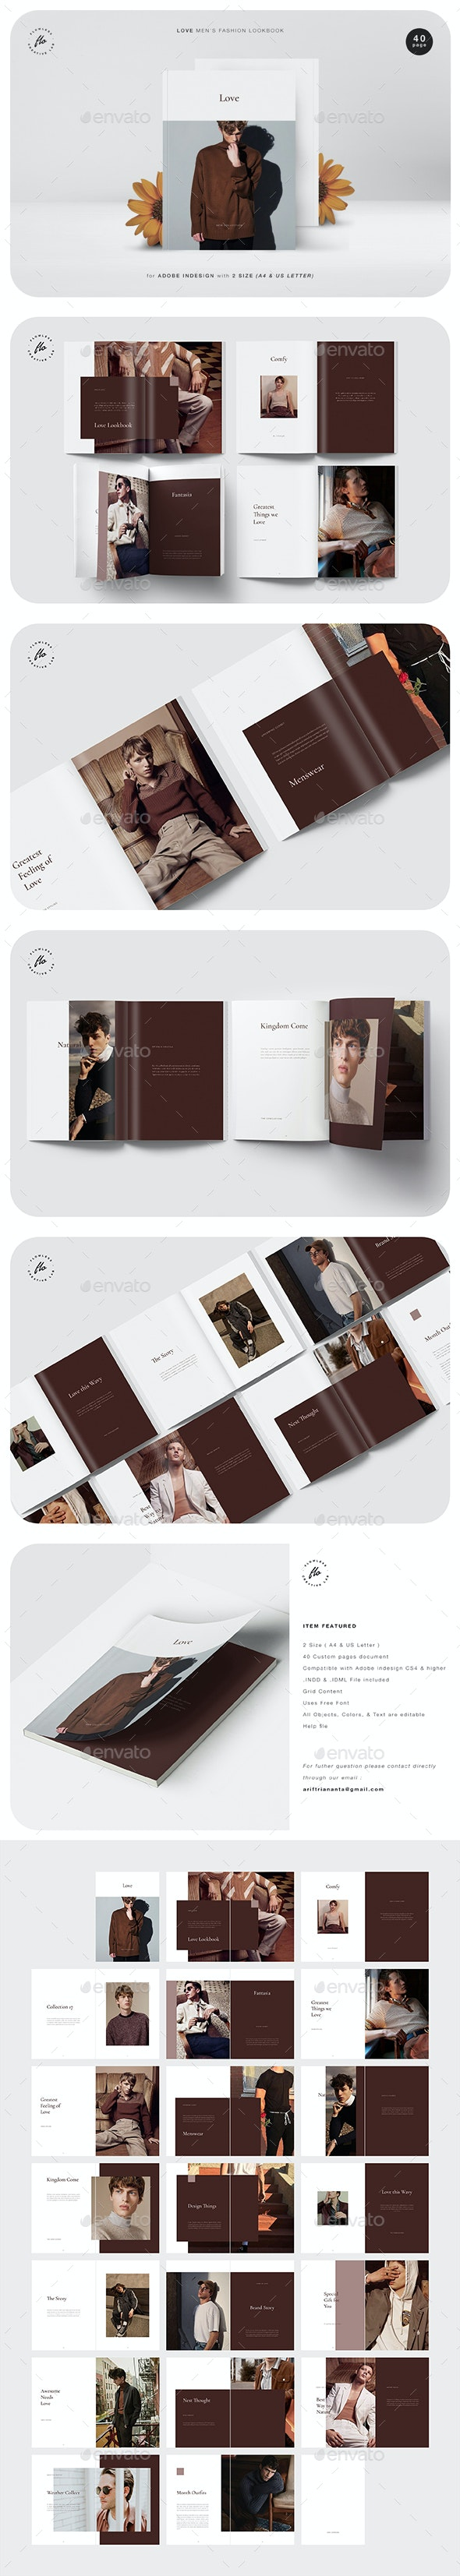 Love Men's Fashion Lookbook - Magazines Print Templates